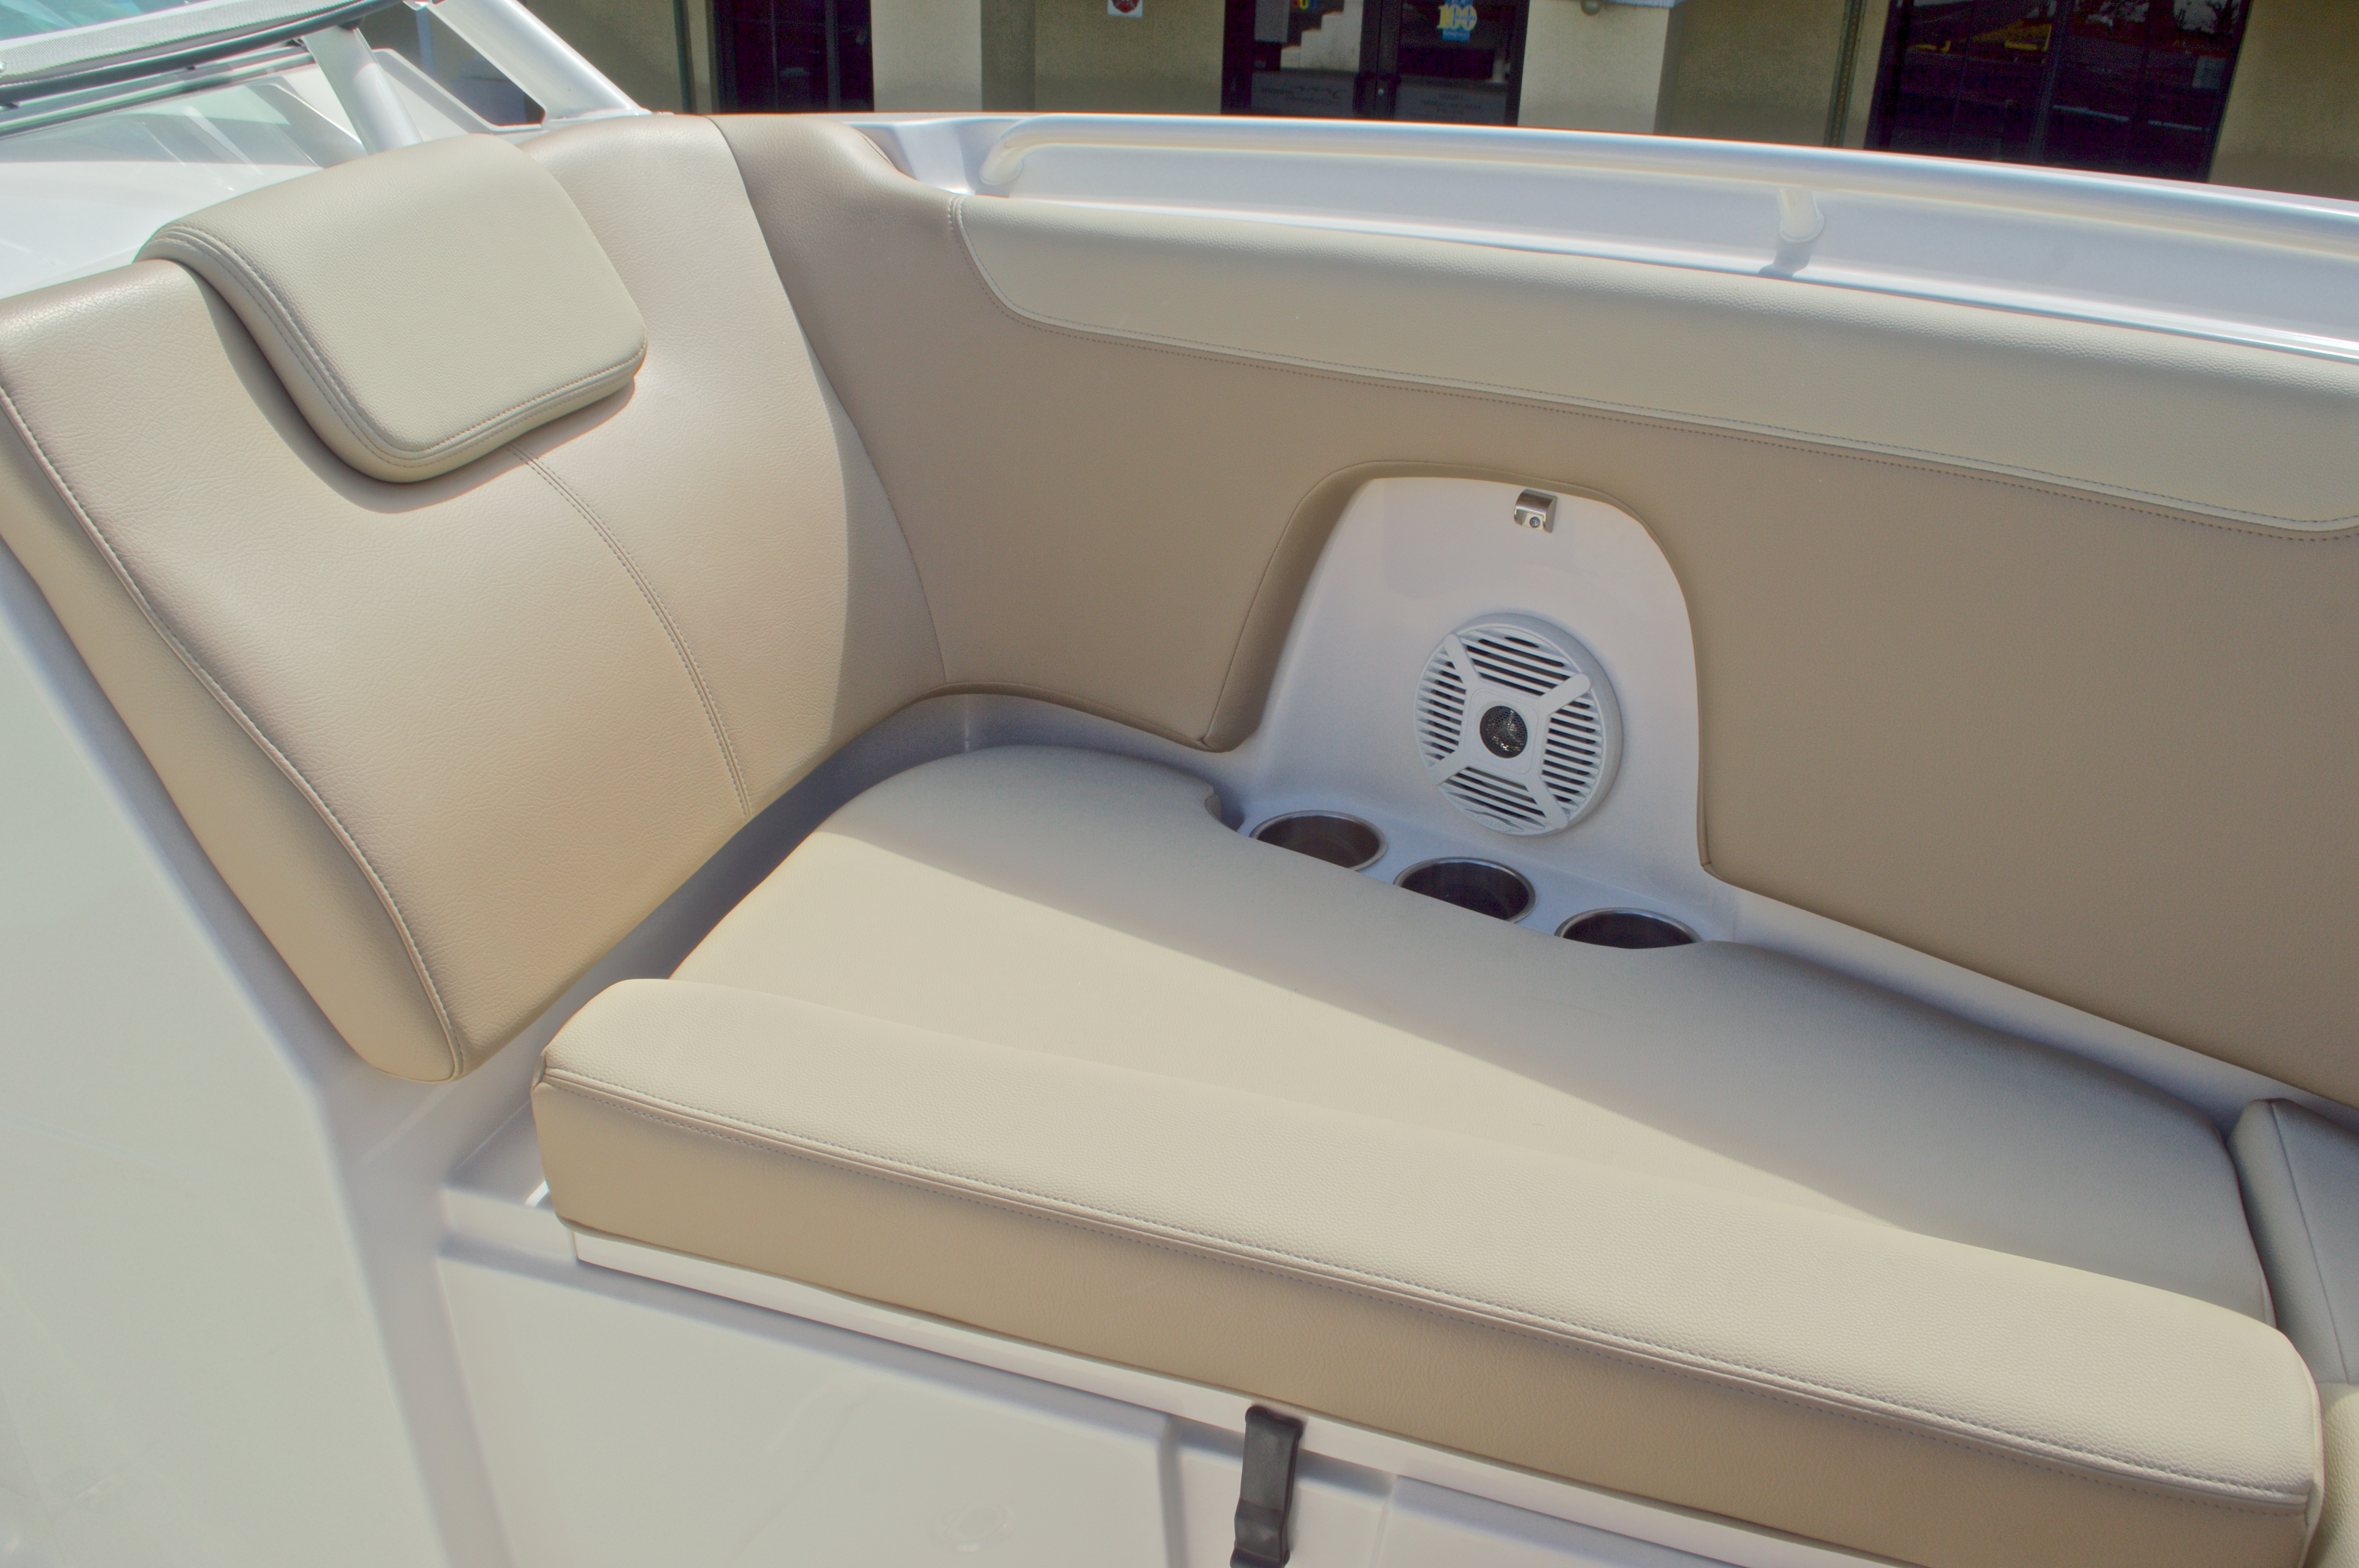 Thumbnail 62 for New 2017 Sailfish 275 Dual Console boat for sale in West Palm Beach, FL